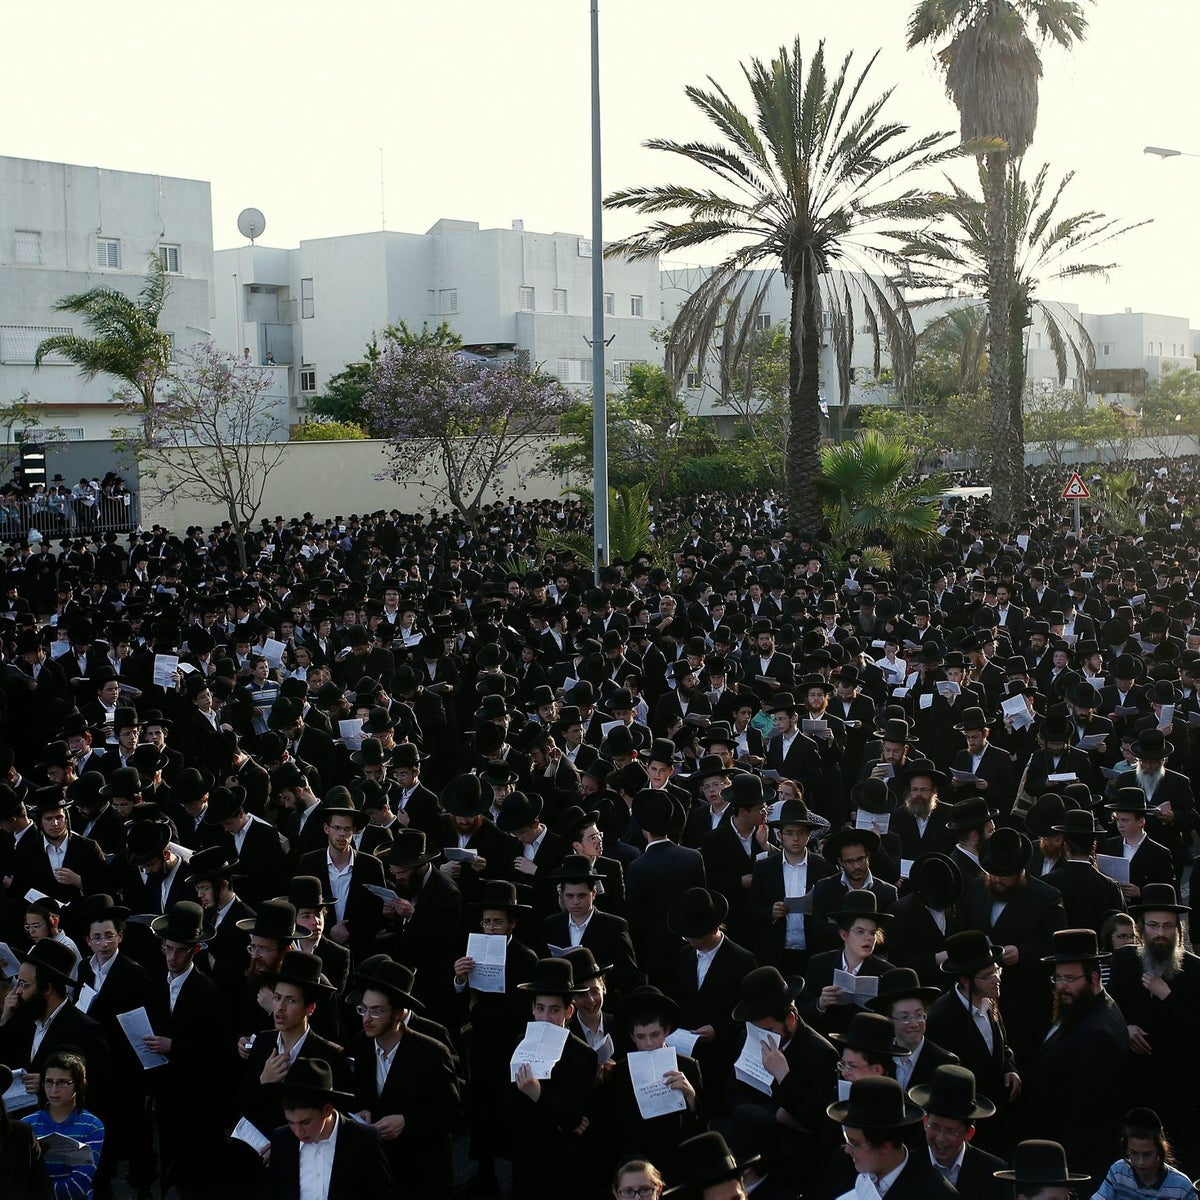 An ultra-Orthodox prayer protest against the Big Fashion mall's Shabbat opening in Ashdod, May 2015.